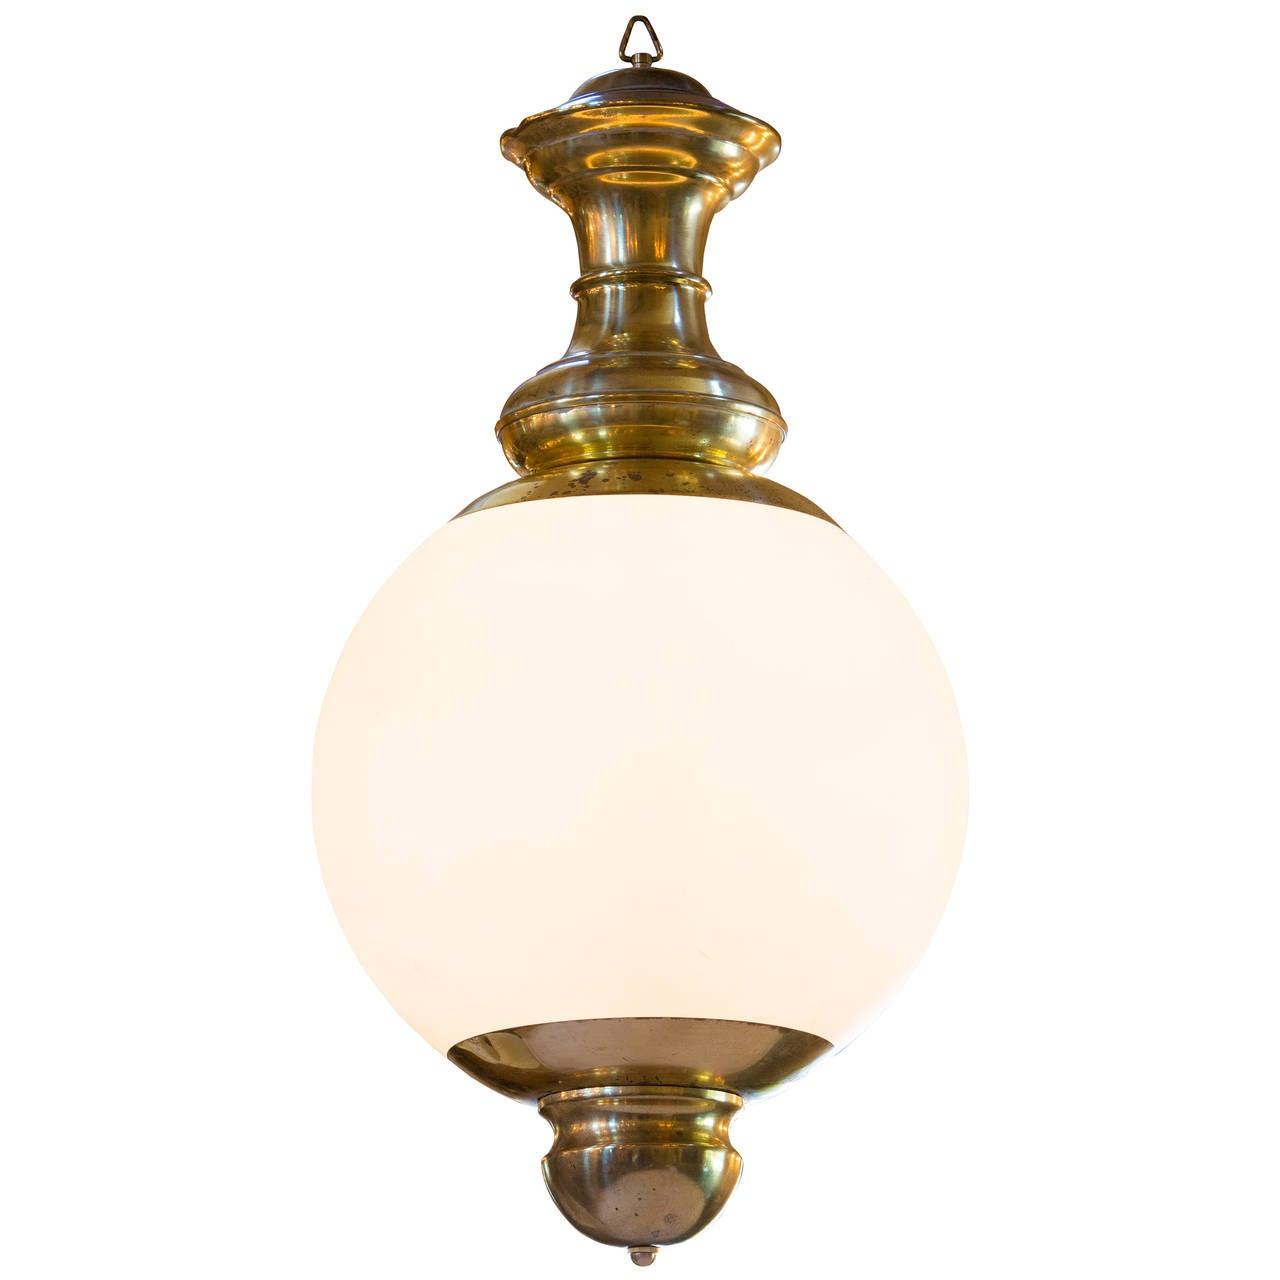 Oversized Vintage Brass And Milk Glass Pendant At 1stdibs. Ac Cabinets. Is Asphalt Cheaper Than Concrete. Modern Light. Boho Designs. Taylor King Furniture. Caesarstone Countertops. Display Cabinets With Glass Doors. Dixie Pools